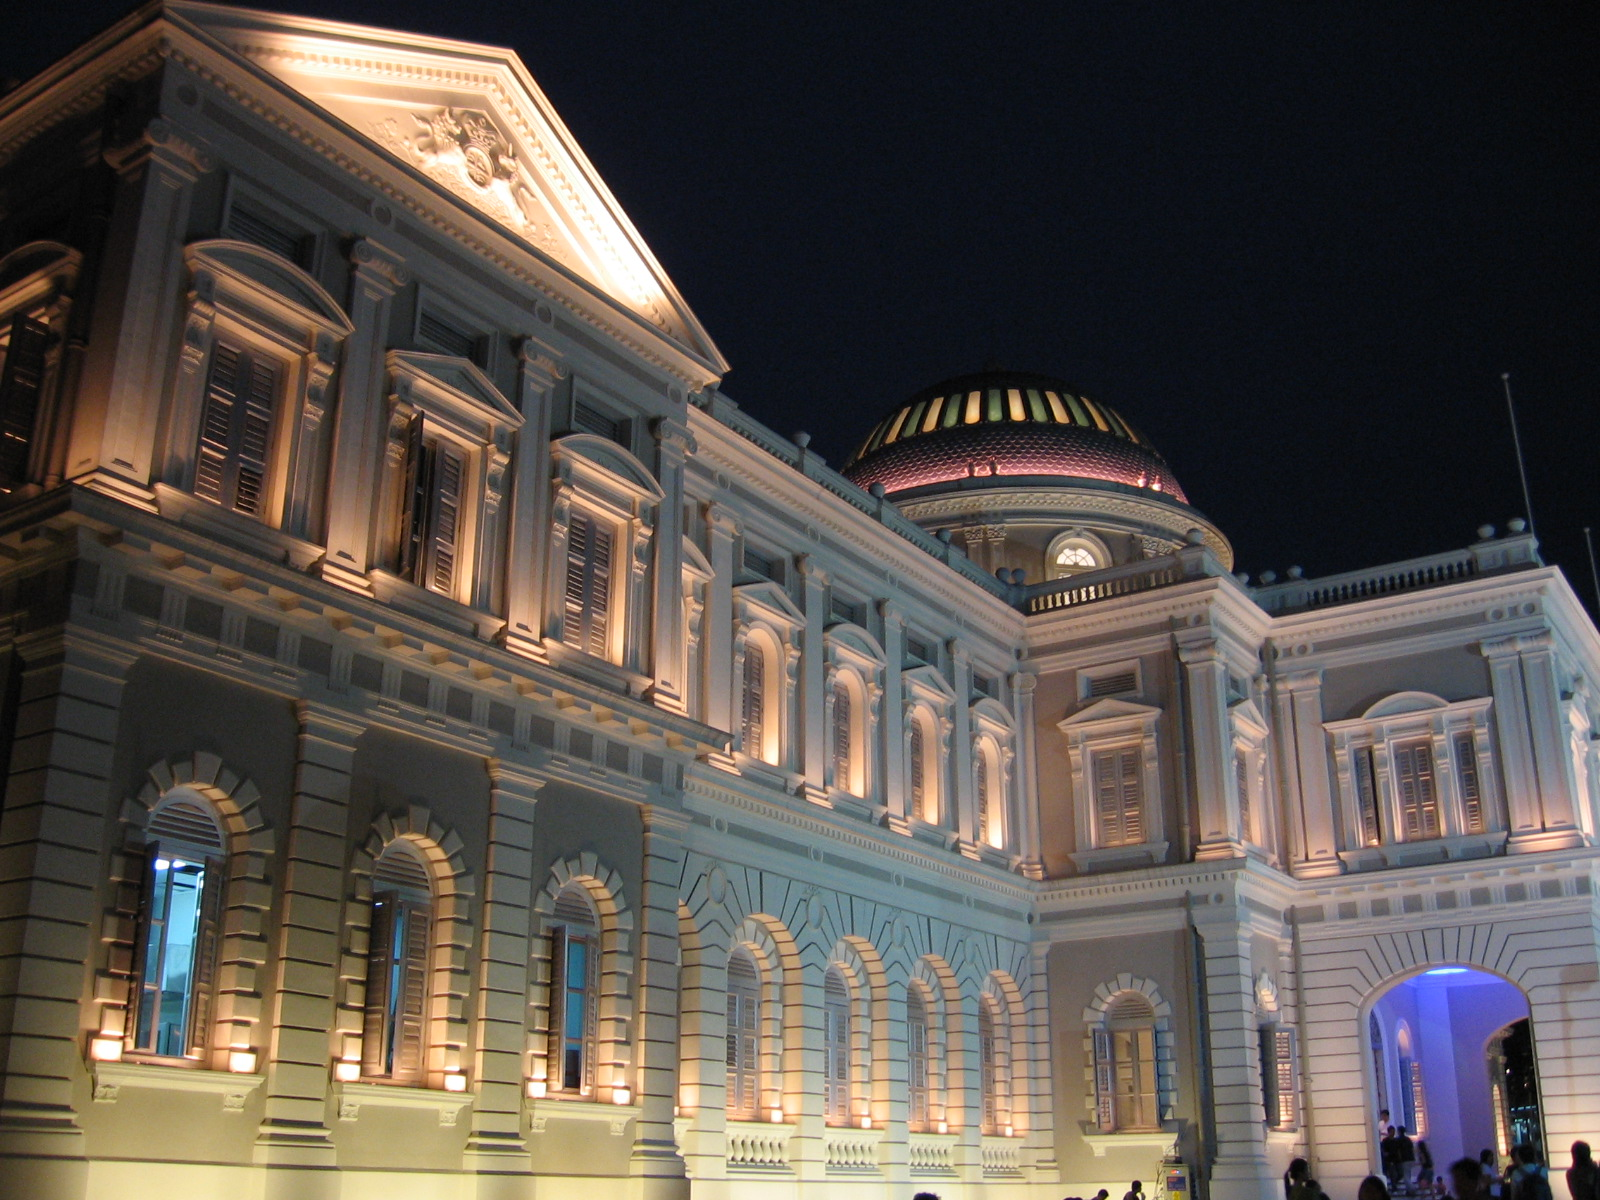 history of singapore History of singapore questions including what impact did the fall of singapore have on australia during world war 2 and where can you buy duel master cards in singapore.